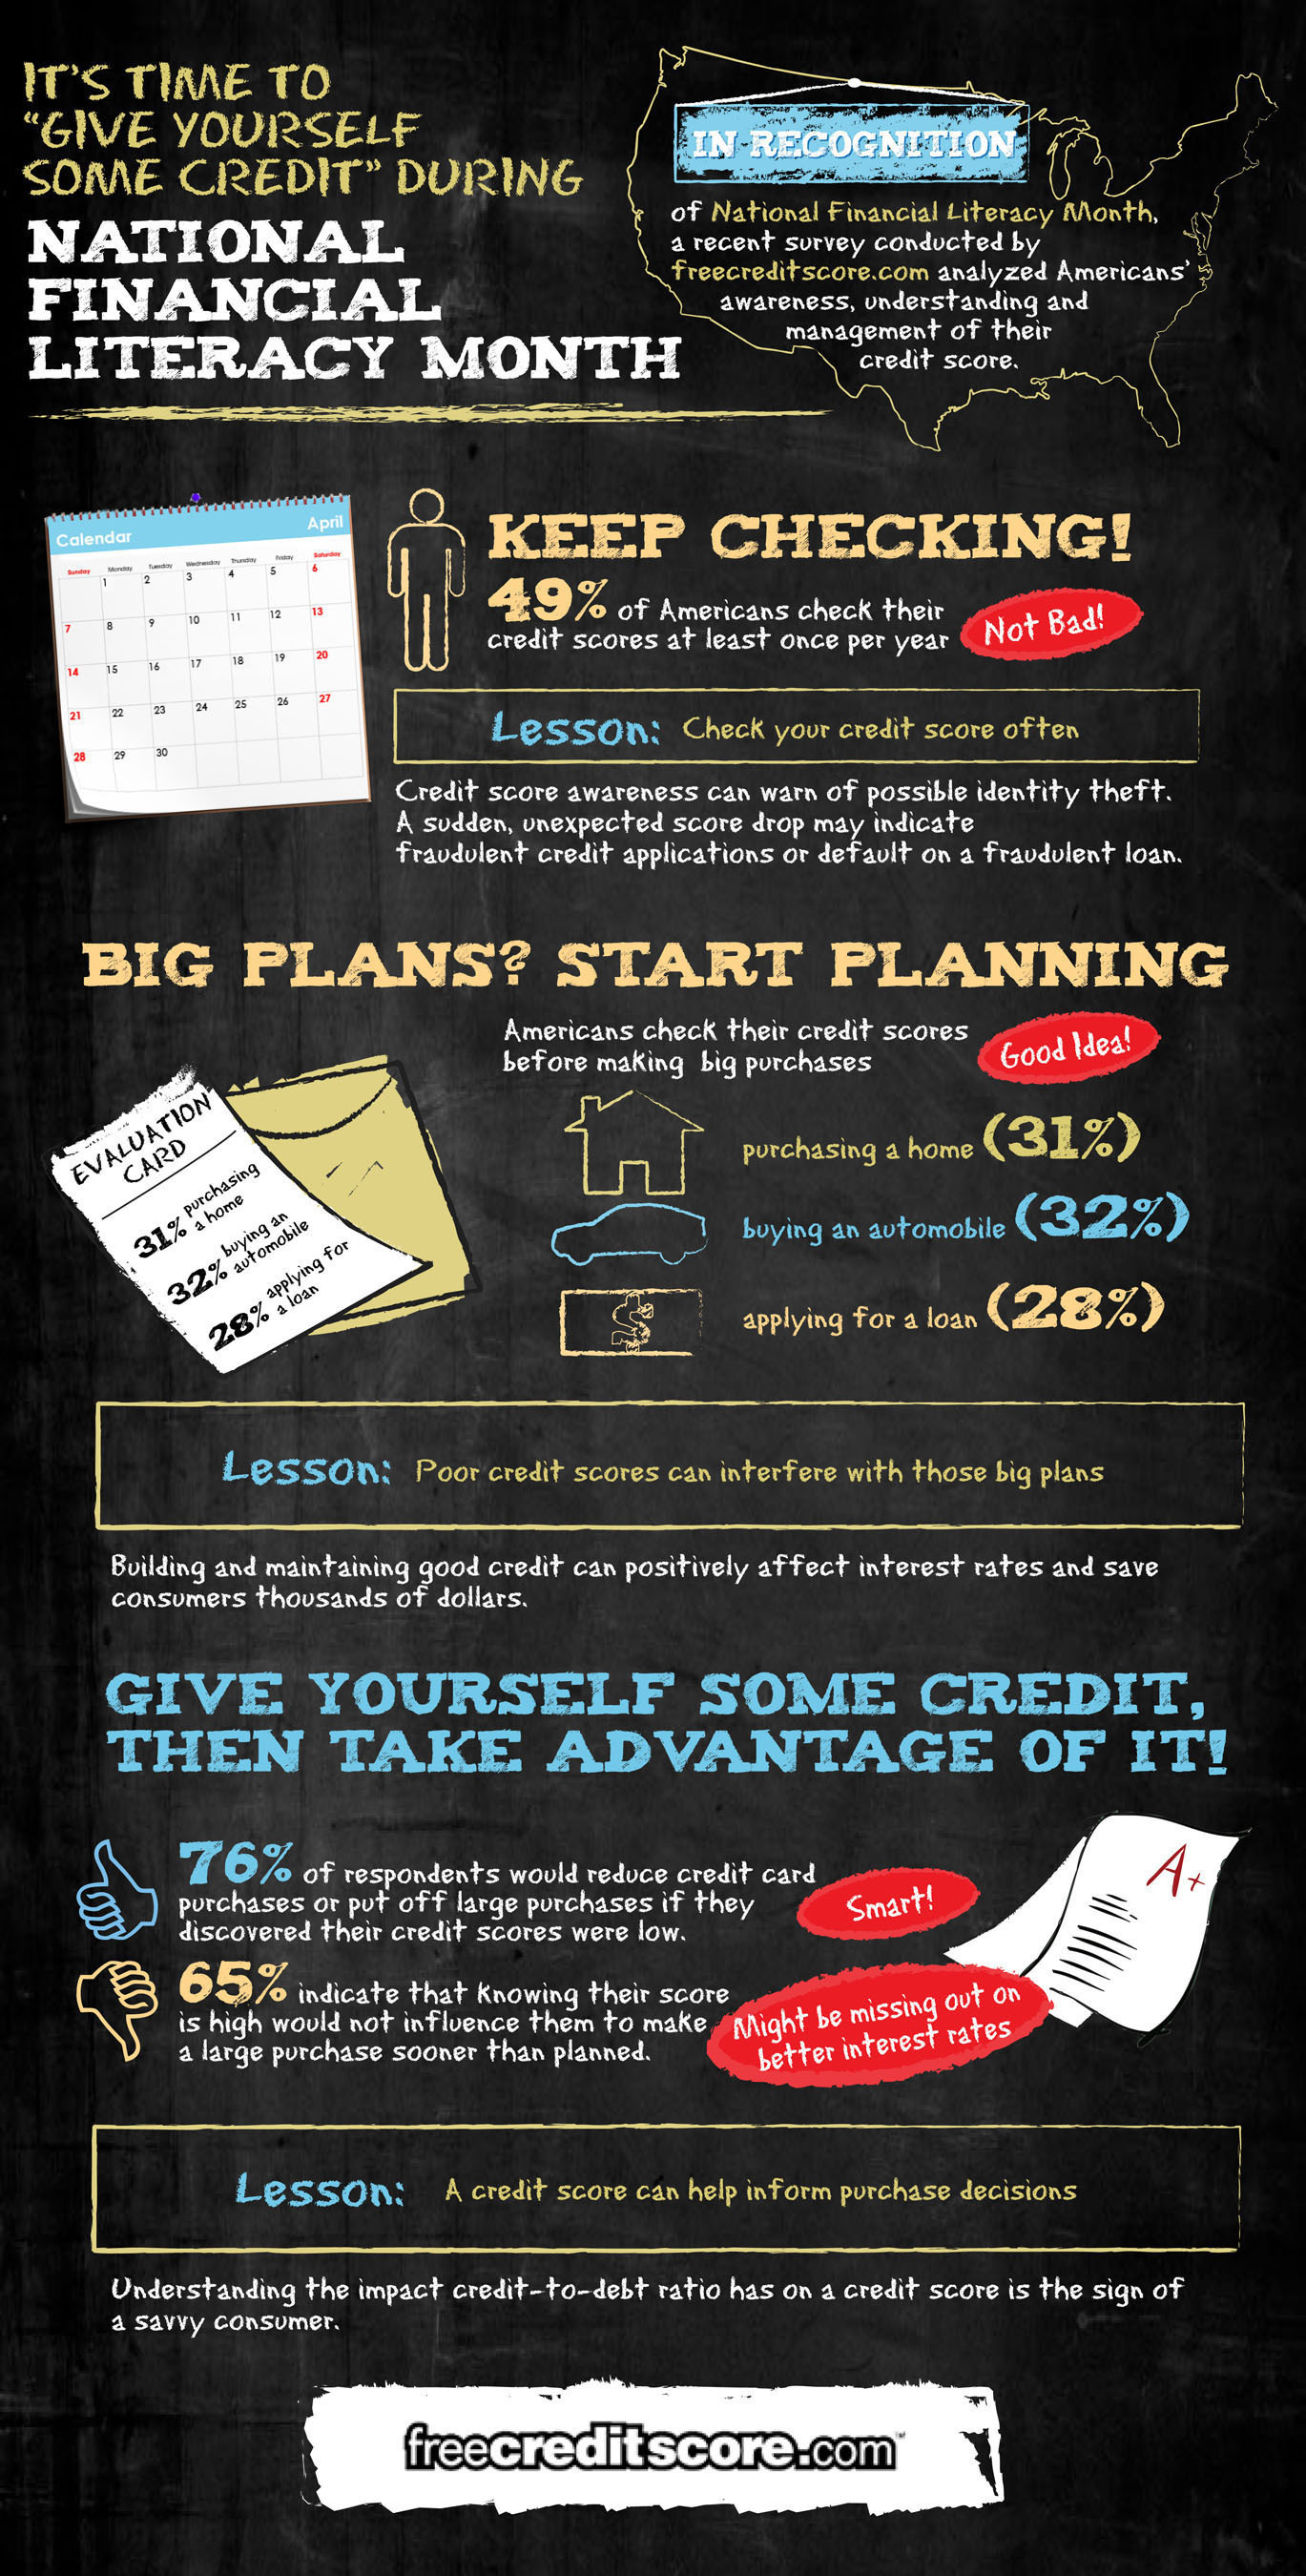 In recognition of National Financial Literacy Month, a recent survey conducted by freecreditscore.com analyzed Americans' awareness, understanding and management of their credit score.  Highlights from this study are displayed in this infographic.  (PRNewsFoto/freecreditscore.com)